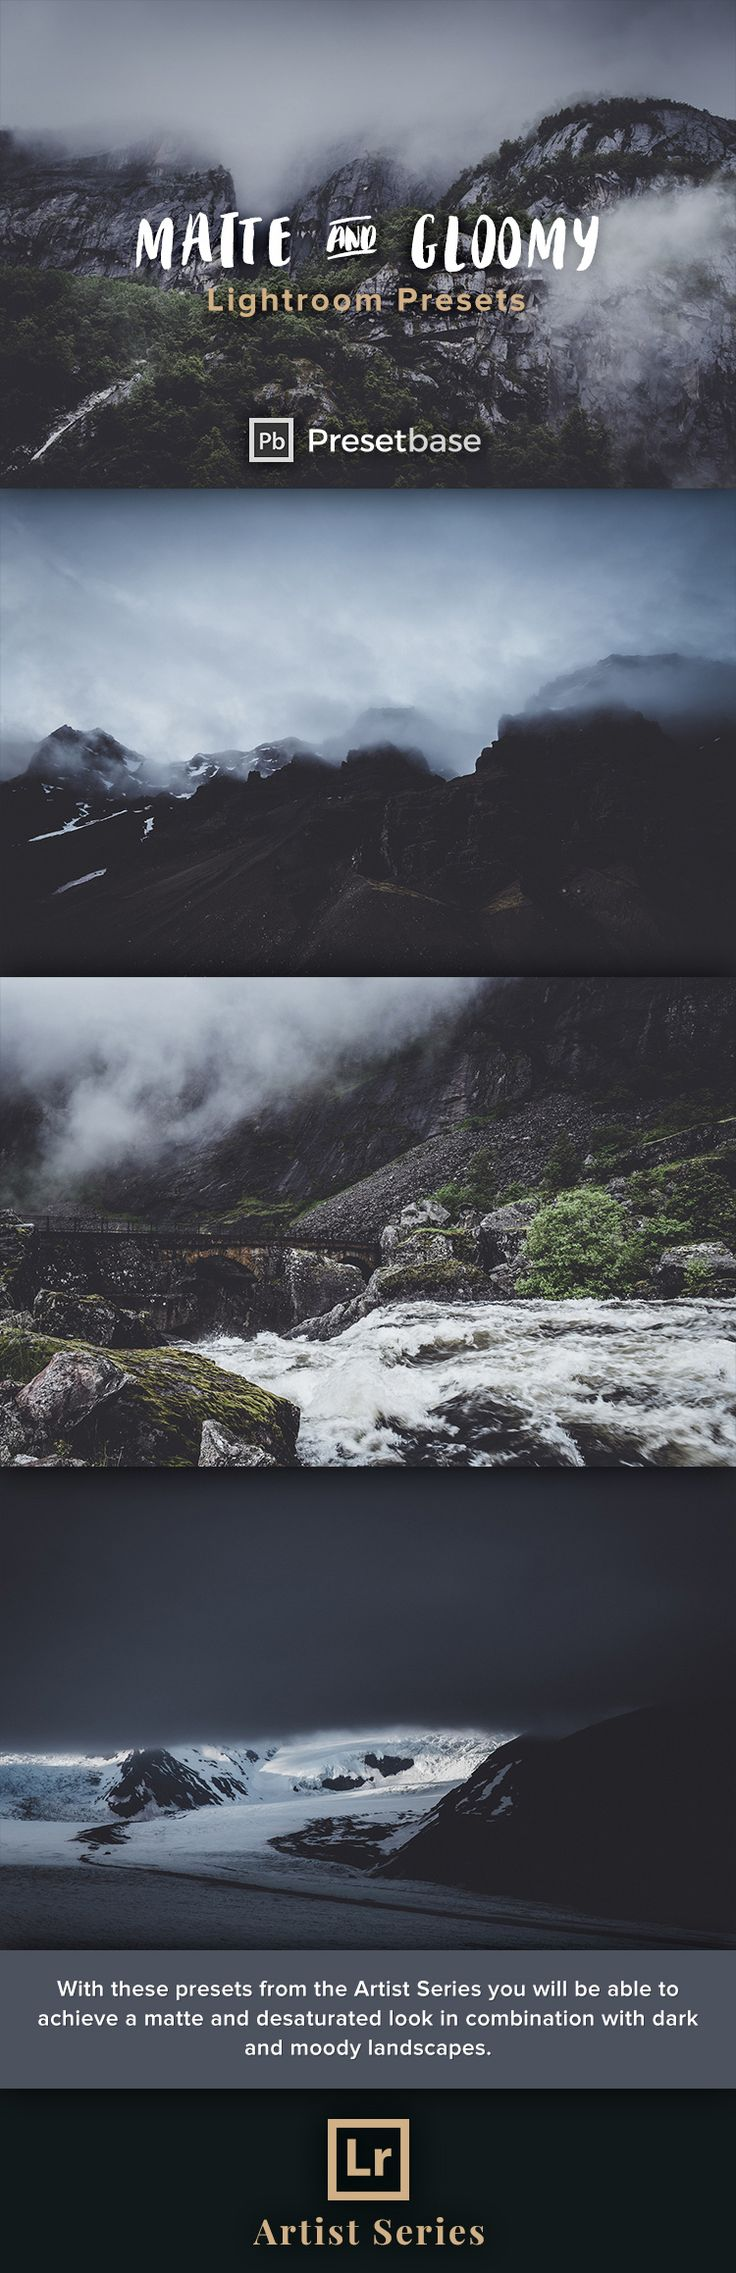 Matte & Gloomy Lightroom Presets (Artist Series) by Presetbase. With these presets you will be able to achieve a matte and desaturated look in combination with dark and moody landscapes. The presets will work best on landscape photos with a high proportion of shadows/blacks and ideally a lot of clouds or fog - like coastal landscapes or misty mountain scenes. But they will also work on other types of photography like urban, lifestyle and travel photography.